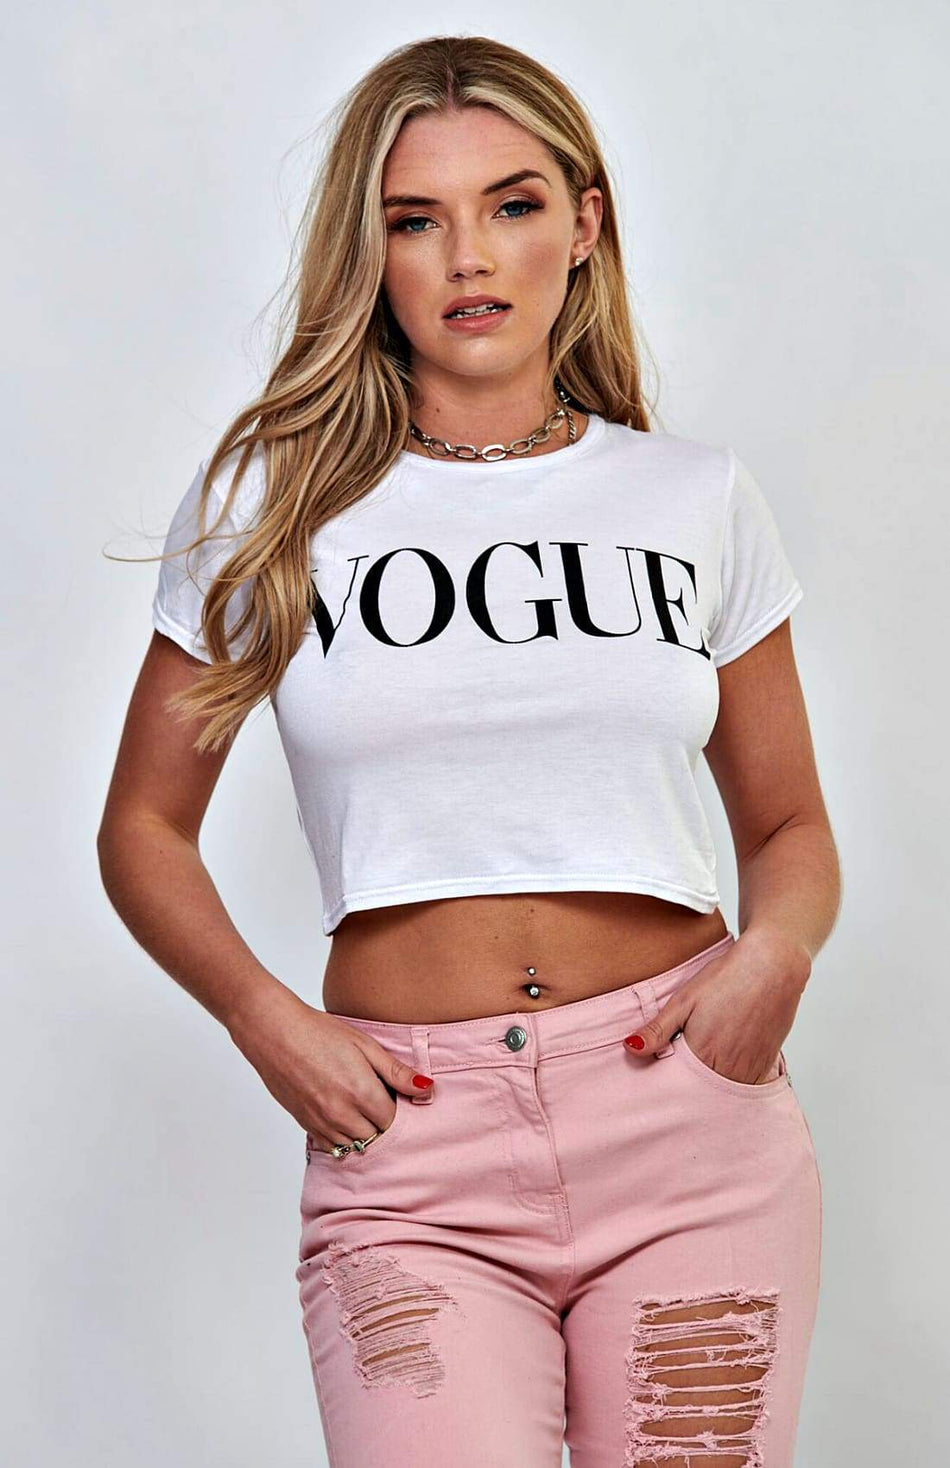 White Vogue Slogan T-Shirt